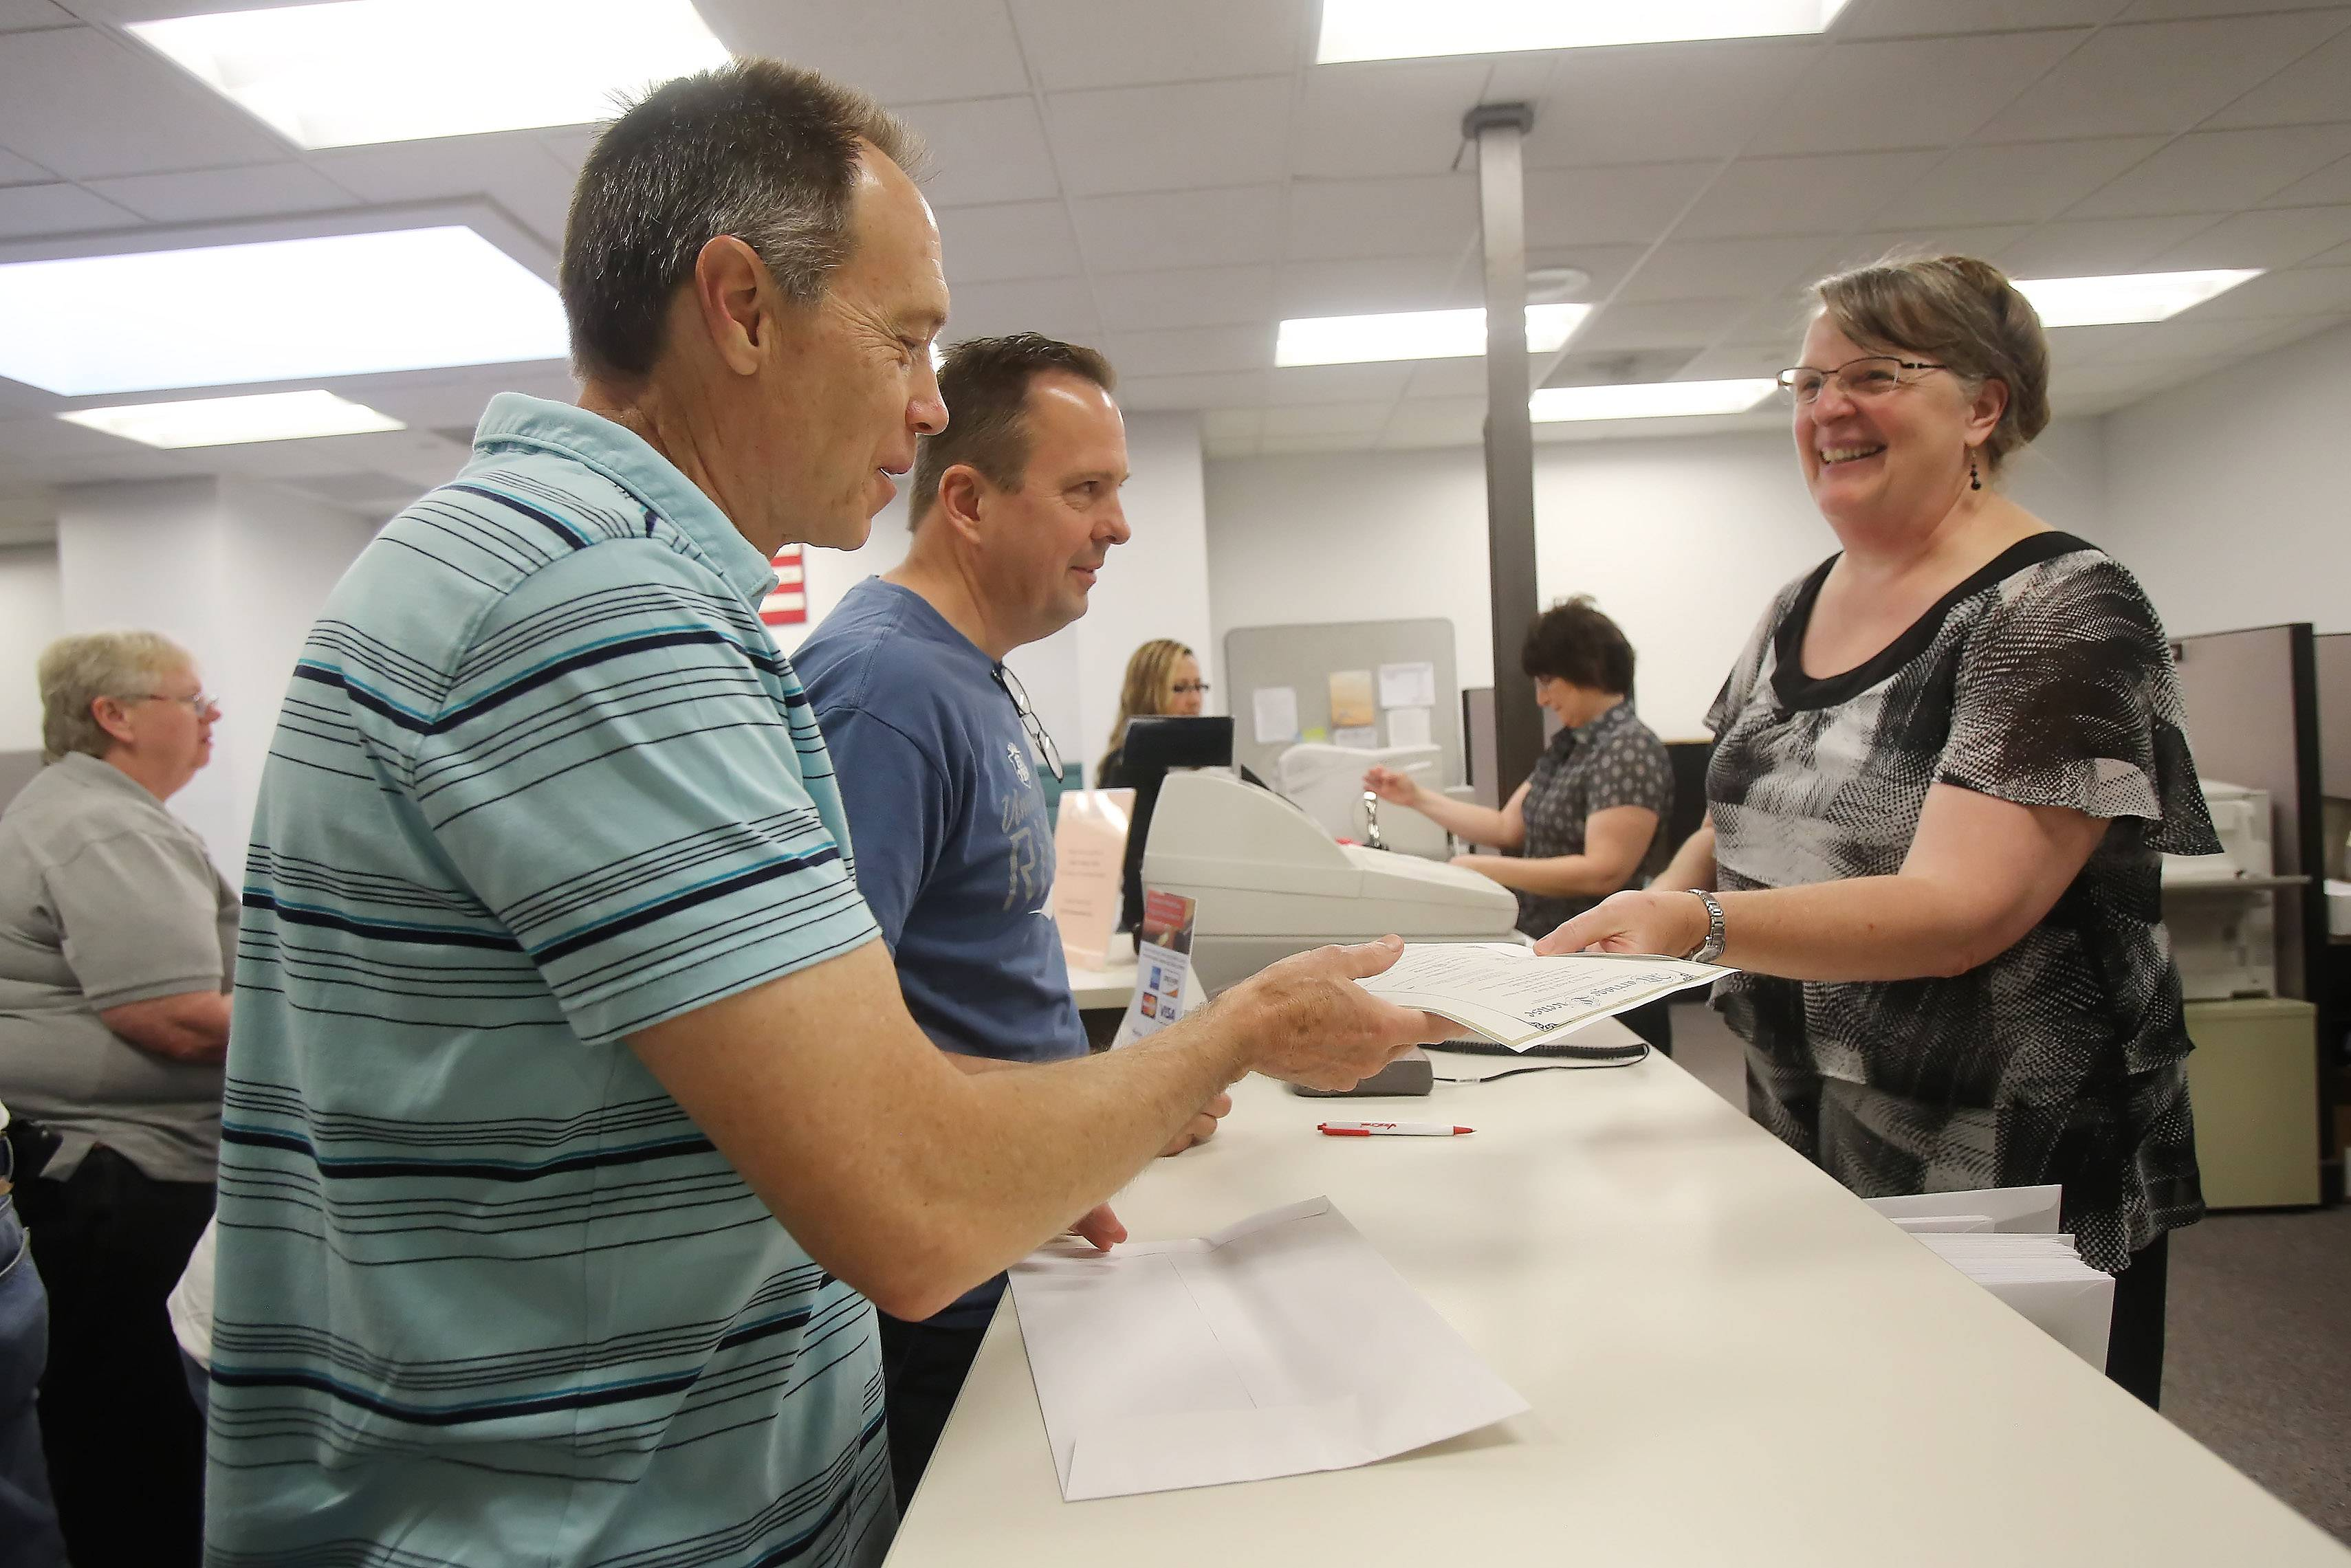 Kevin Schaller and Kevin Fulara of Wauconda receive a marriage license from Mary Anne Potter, of the Lake County clerk's office, as same-sex couples obtained licenses for the first time Monday. The law legalizing same-sex marriages in Illinois became effective on Sunday.